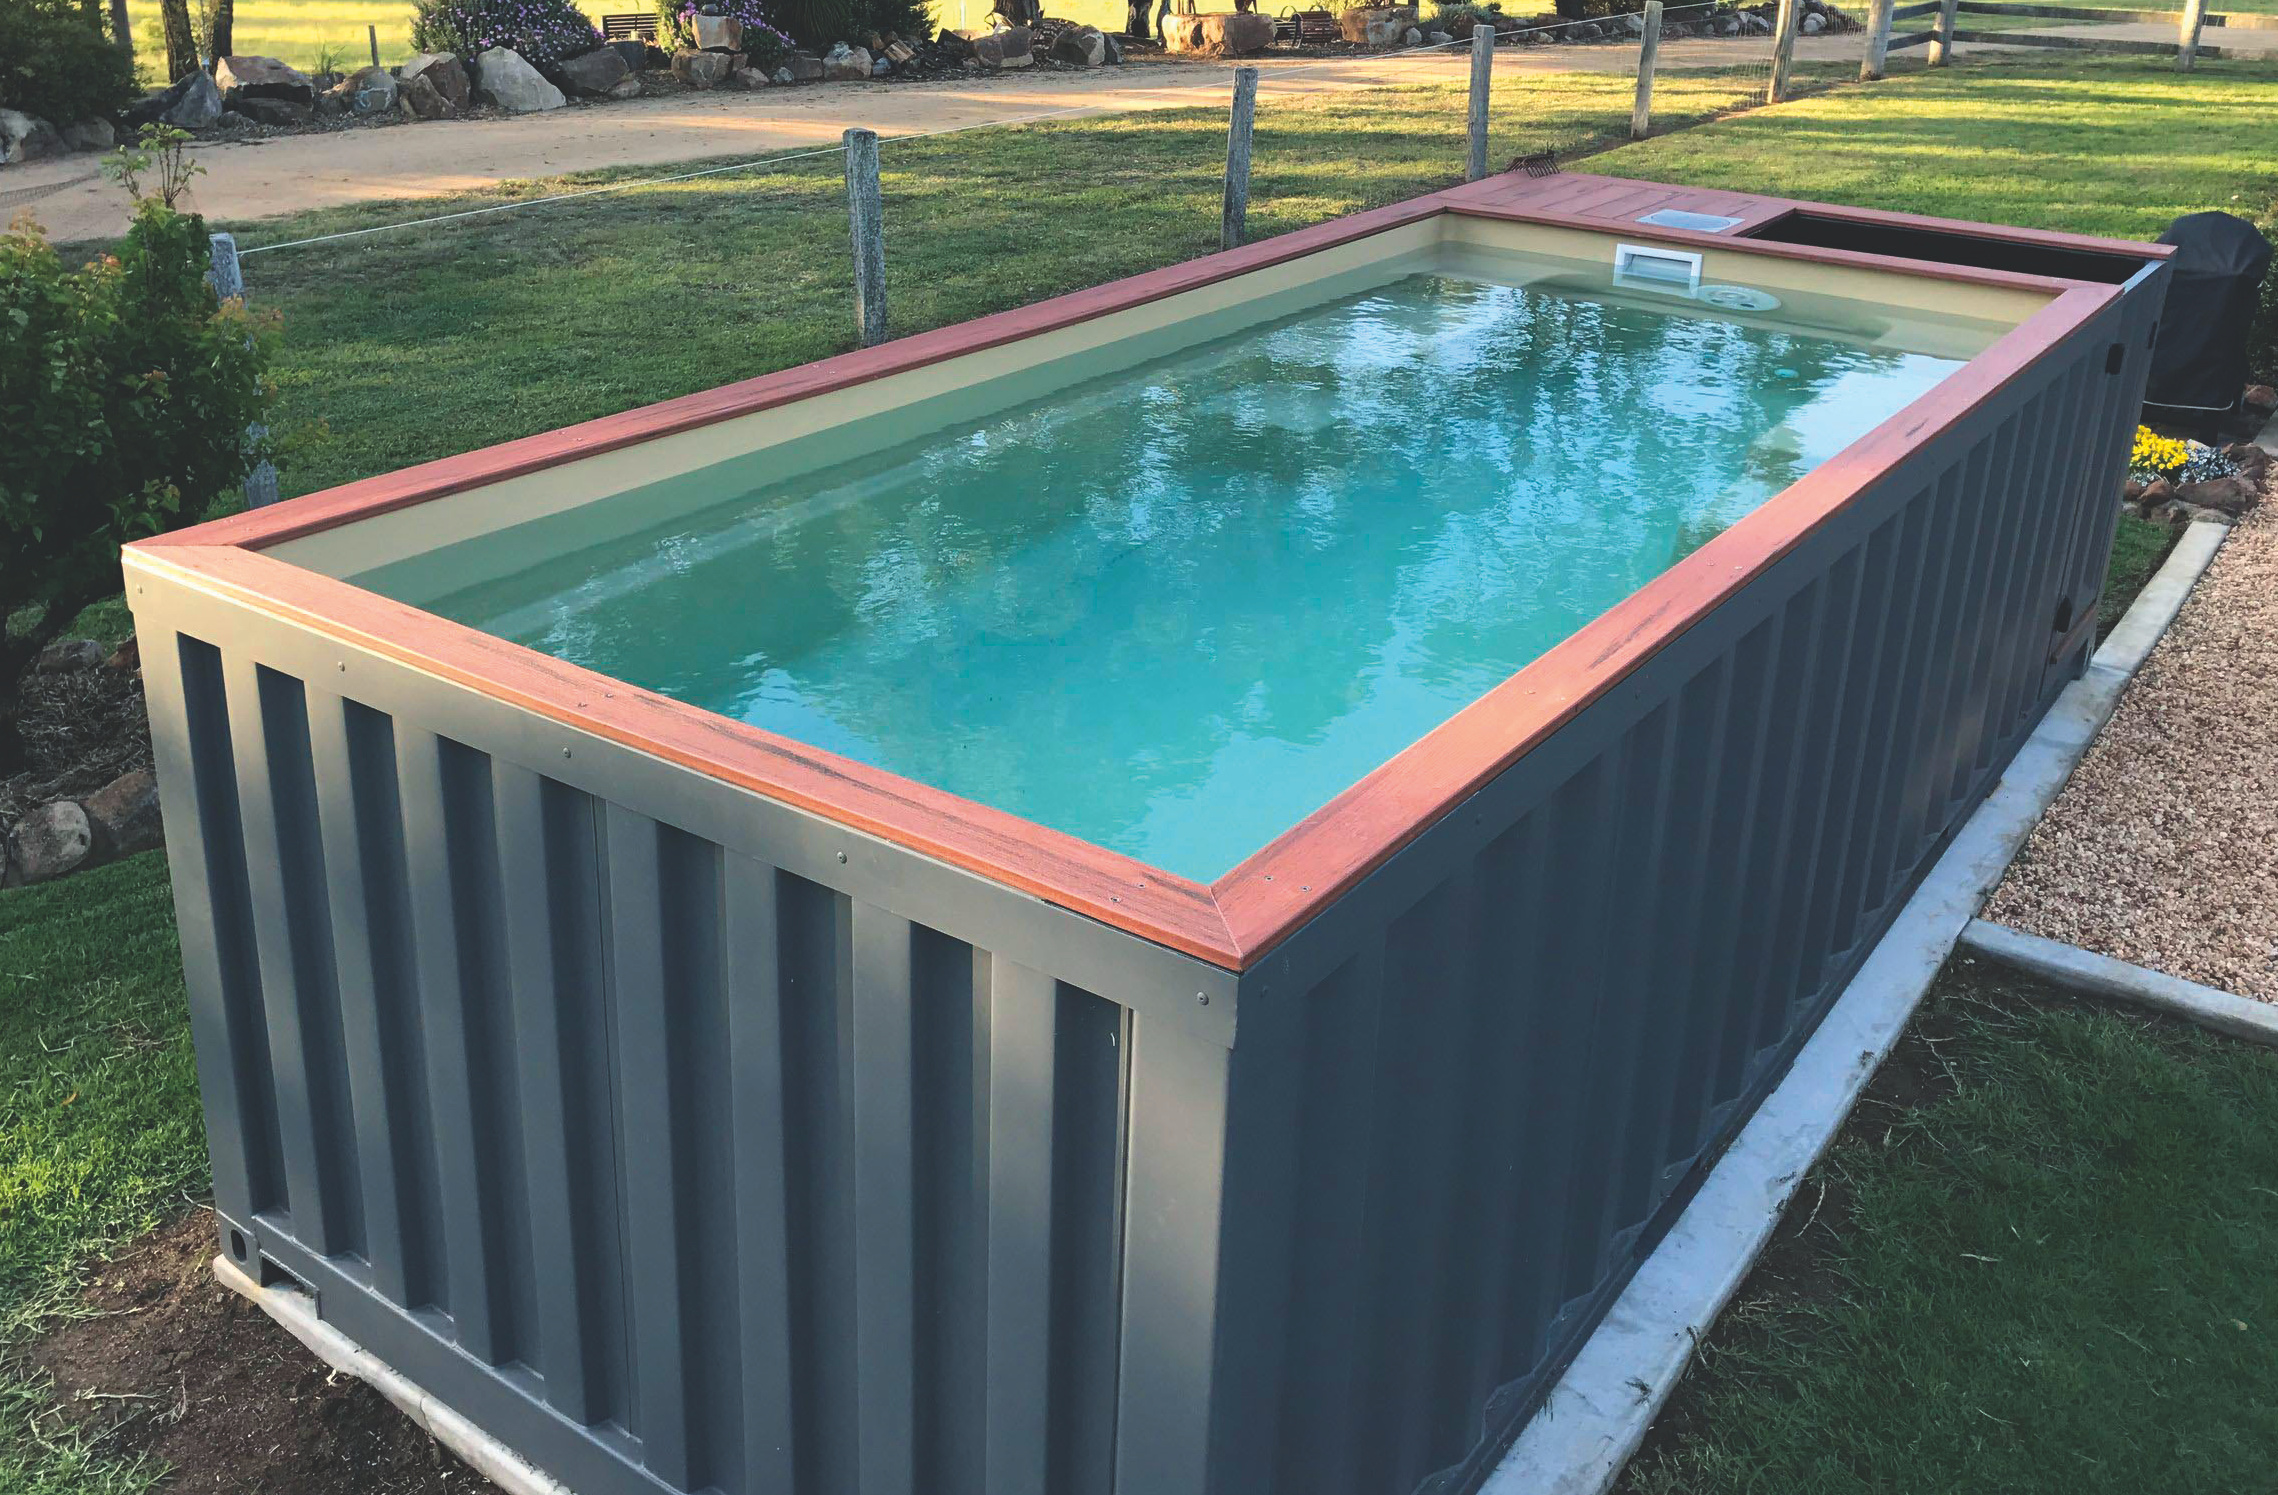 Pool Selber Bauen Container Container Pool Bauen Container Manufaktur Berlin Am